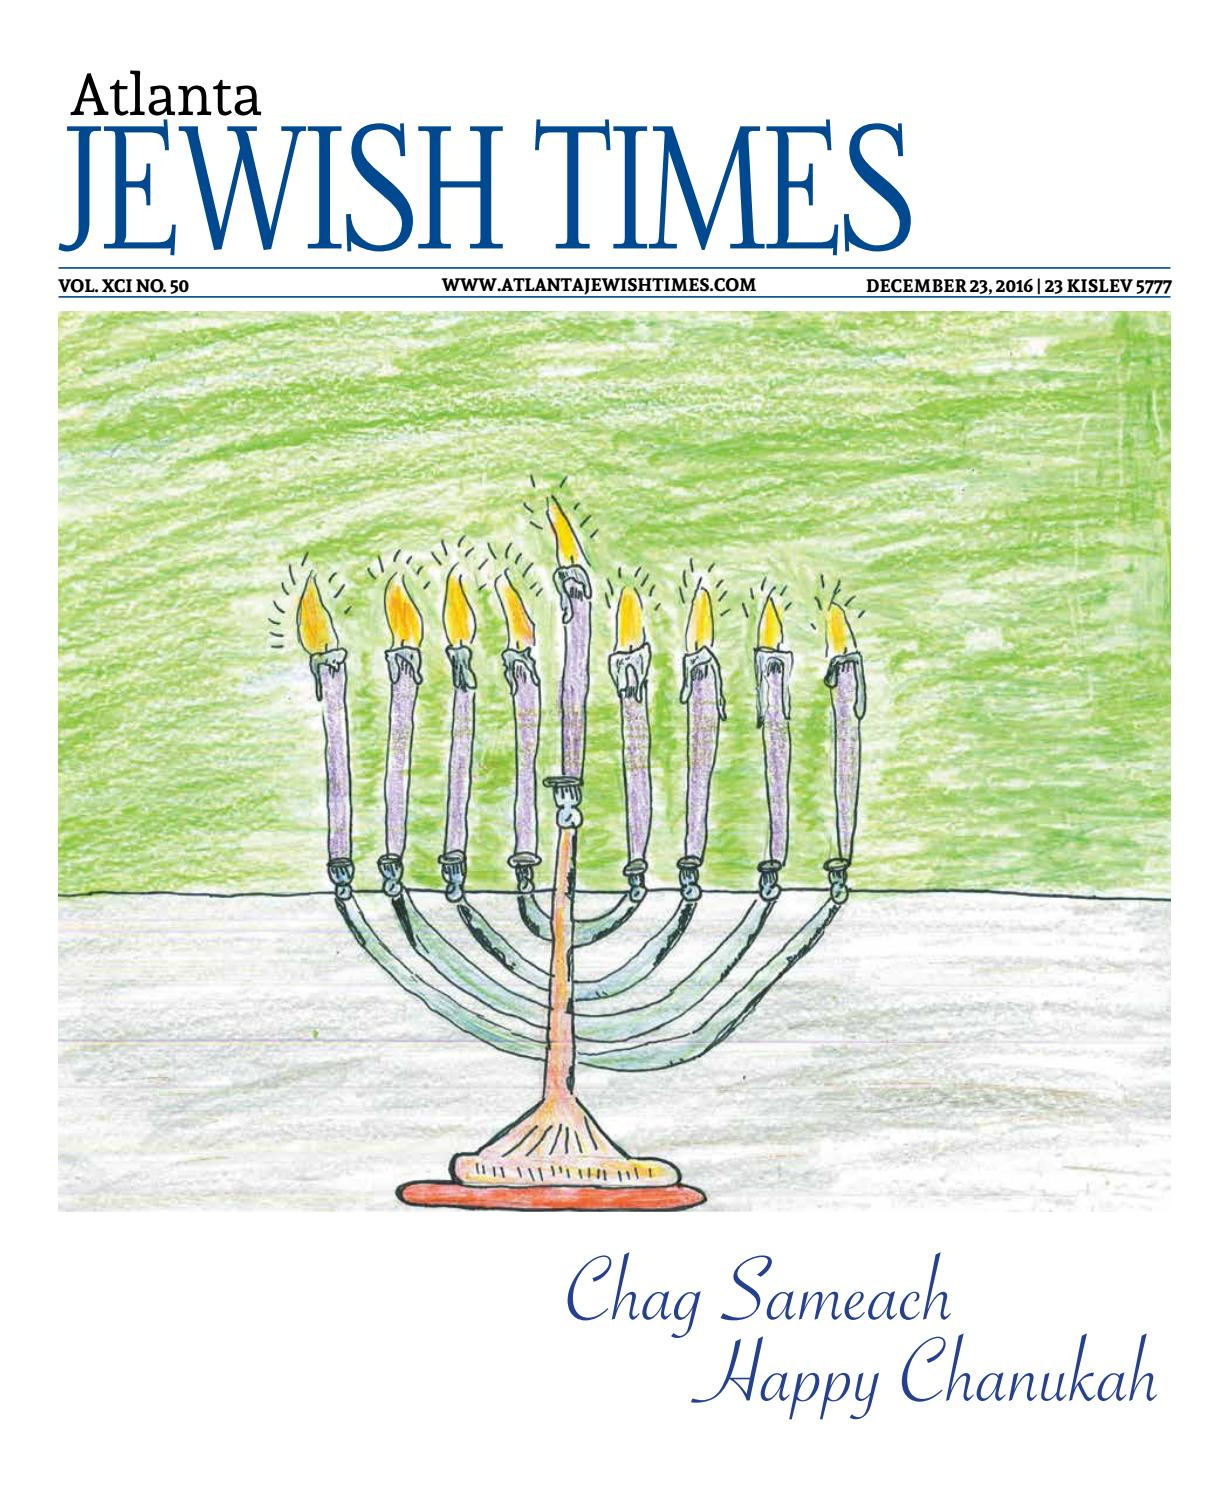 Atlanta Jewish Times Vol Xci No 50 December 23 2016 By Atlanta